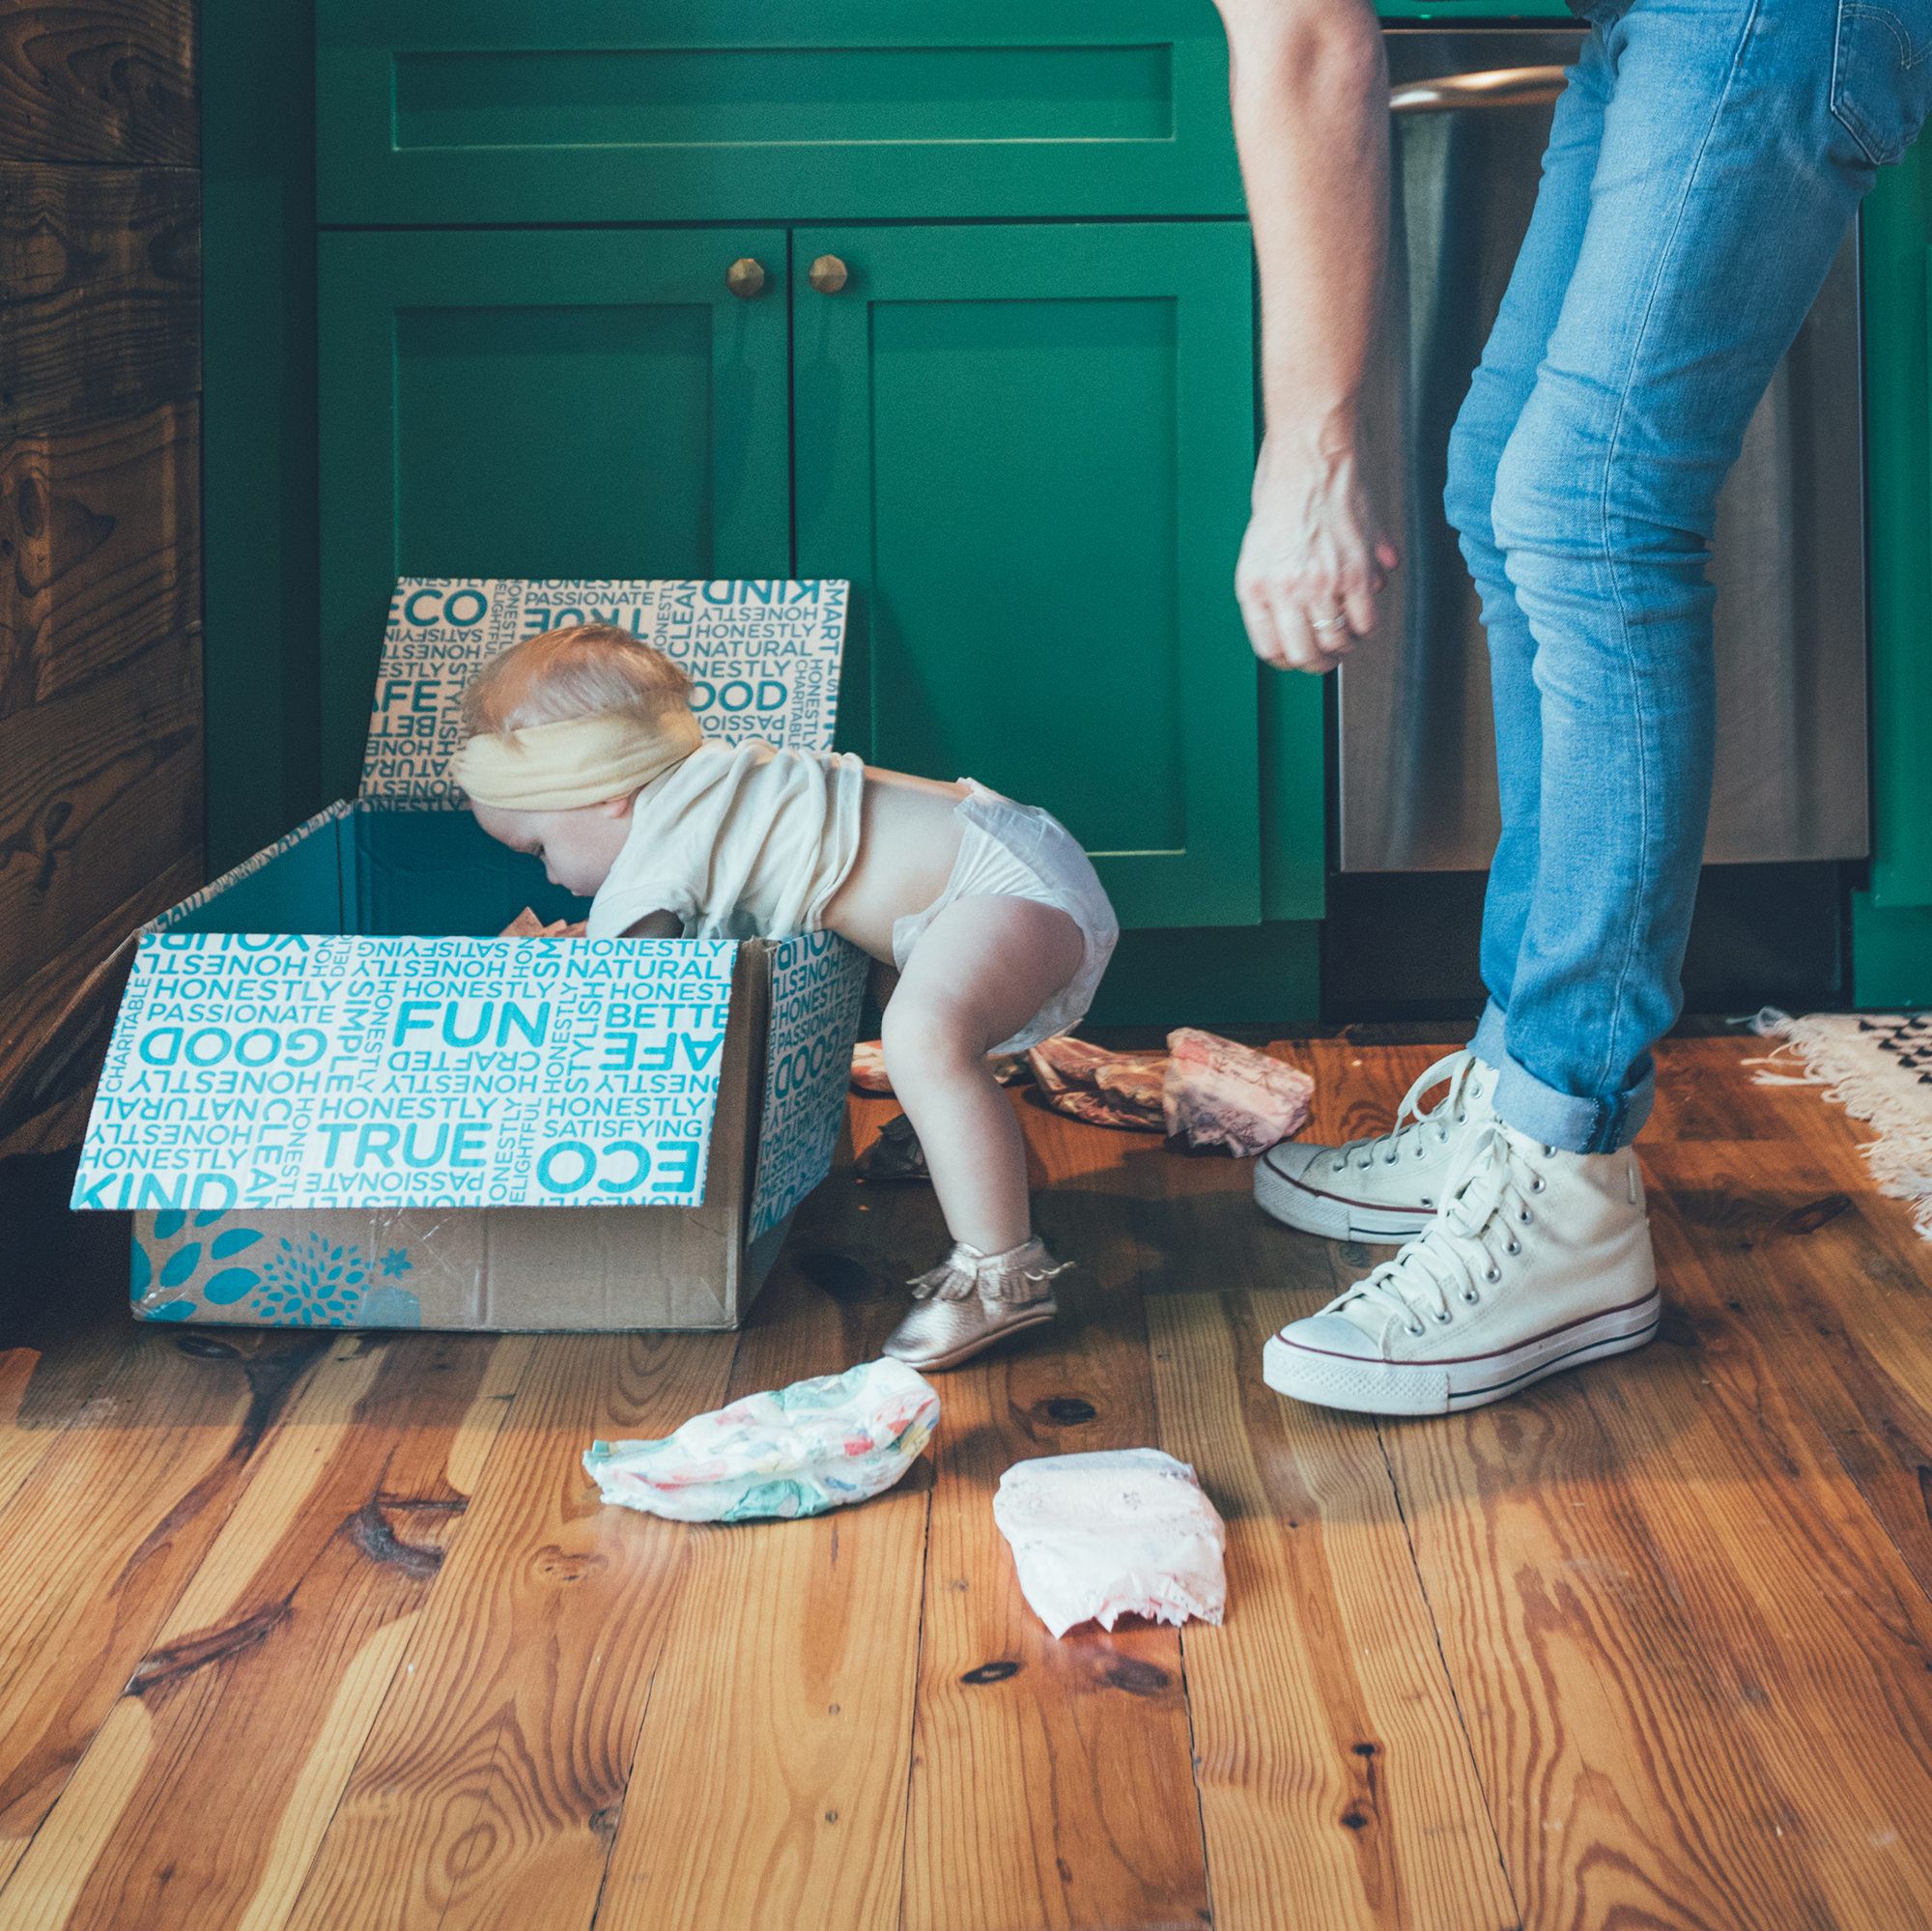 'We have baskets filled with toys everywhere, and she's happy with a box and some crinkle paper.  Couldn't resist capturing this busy toddler in her element on our shoot day.' -